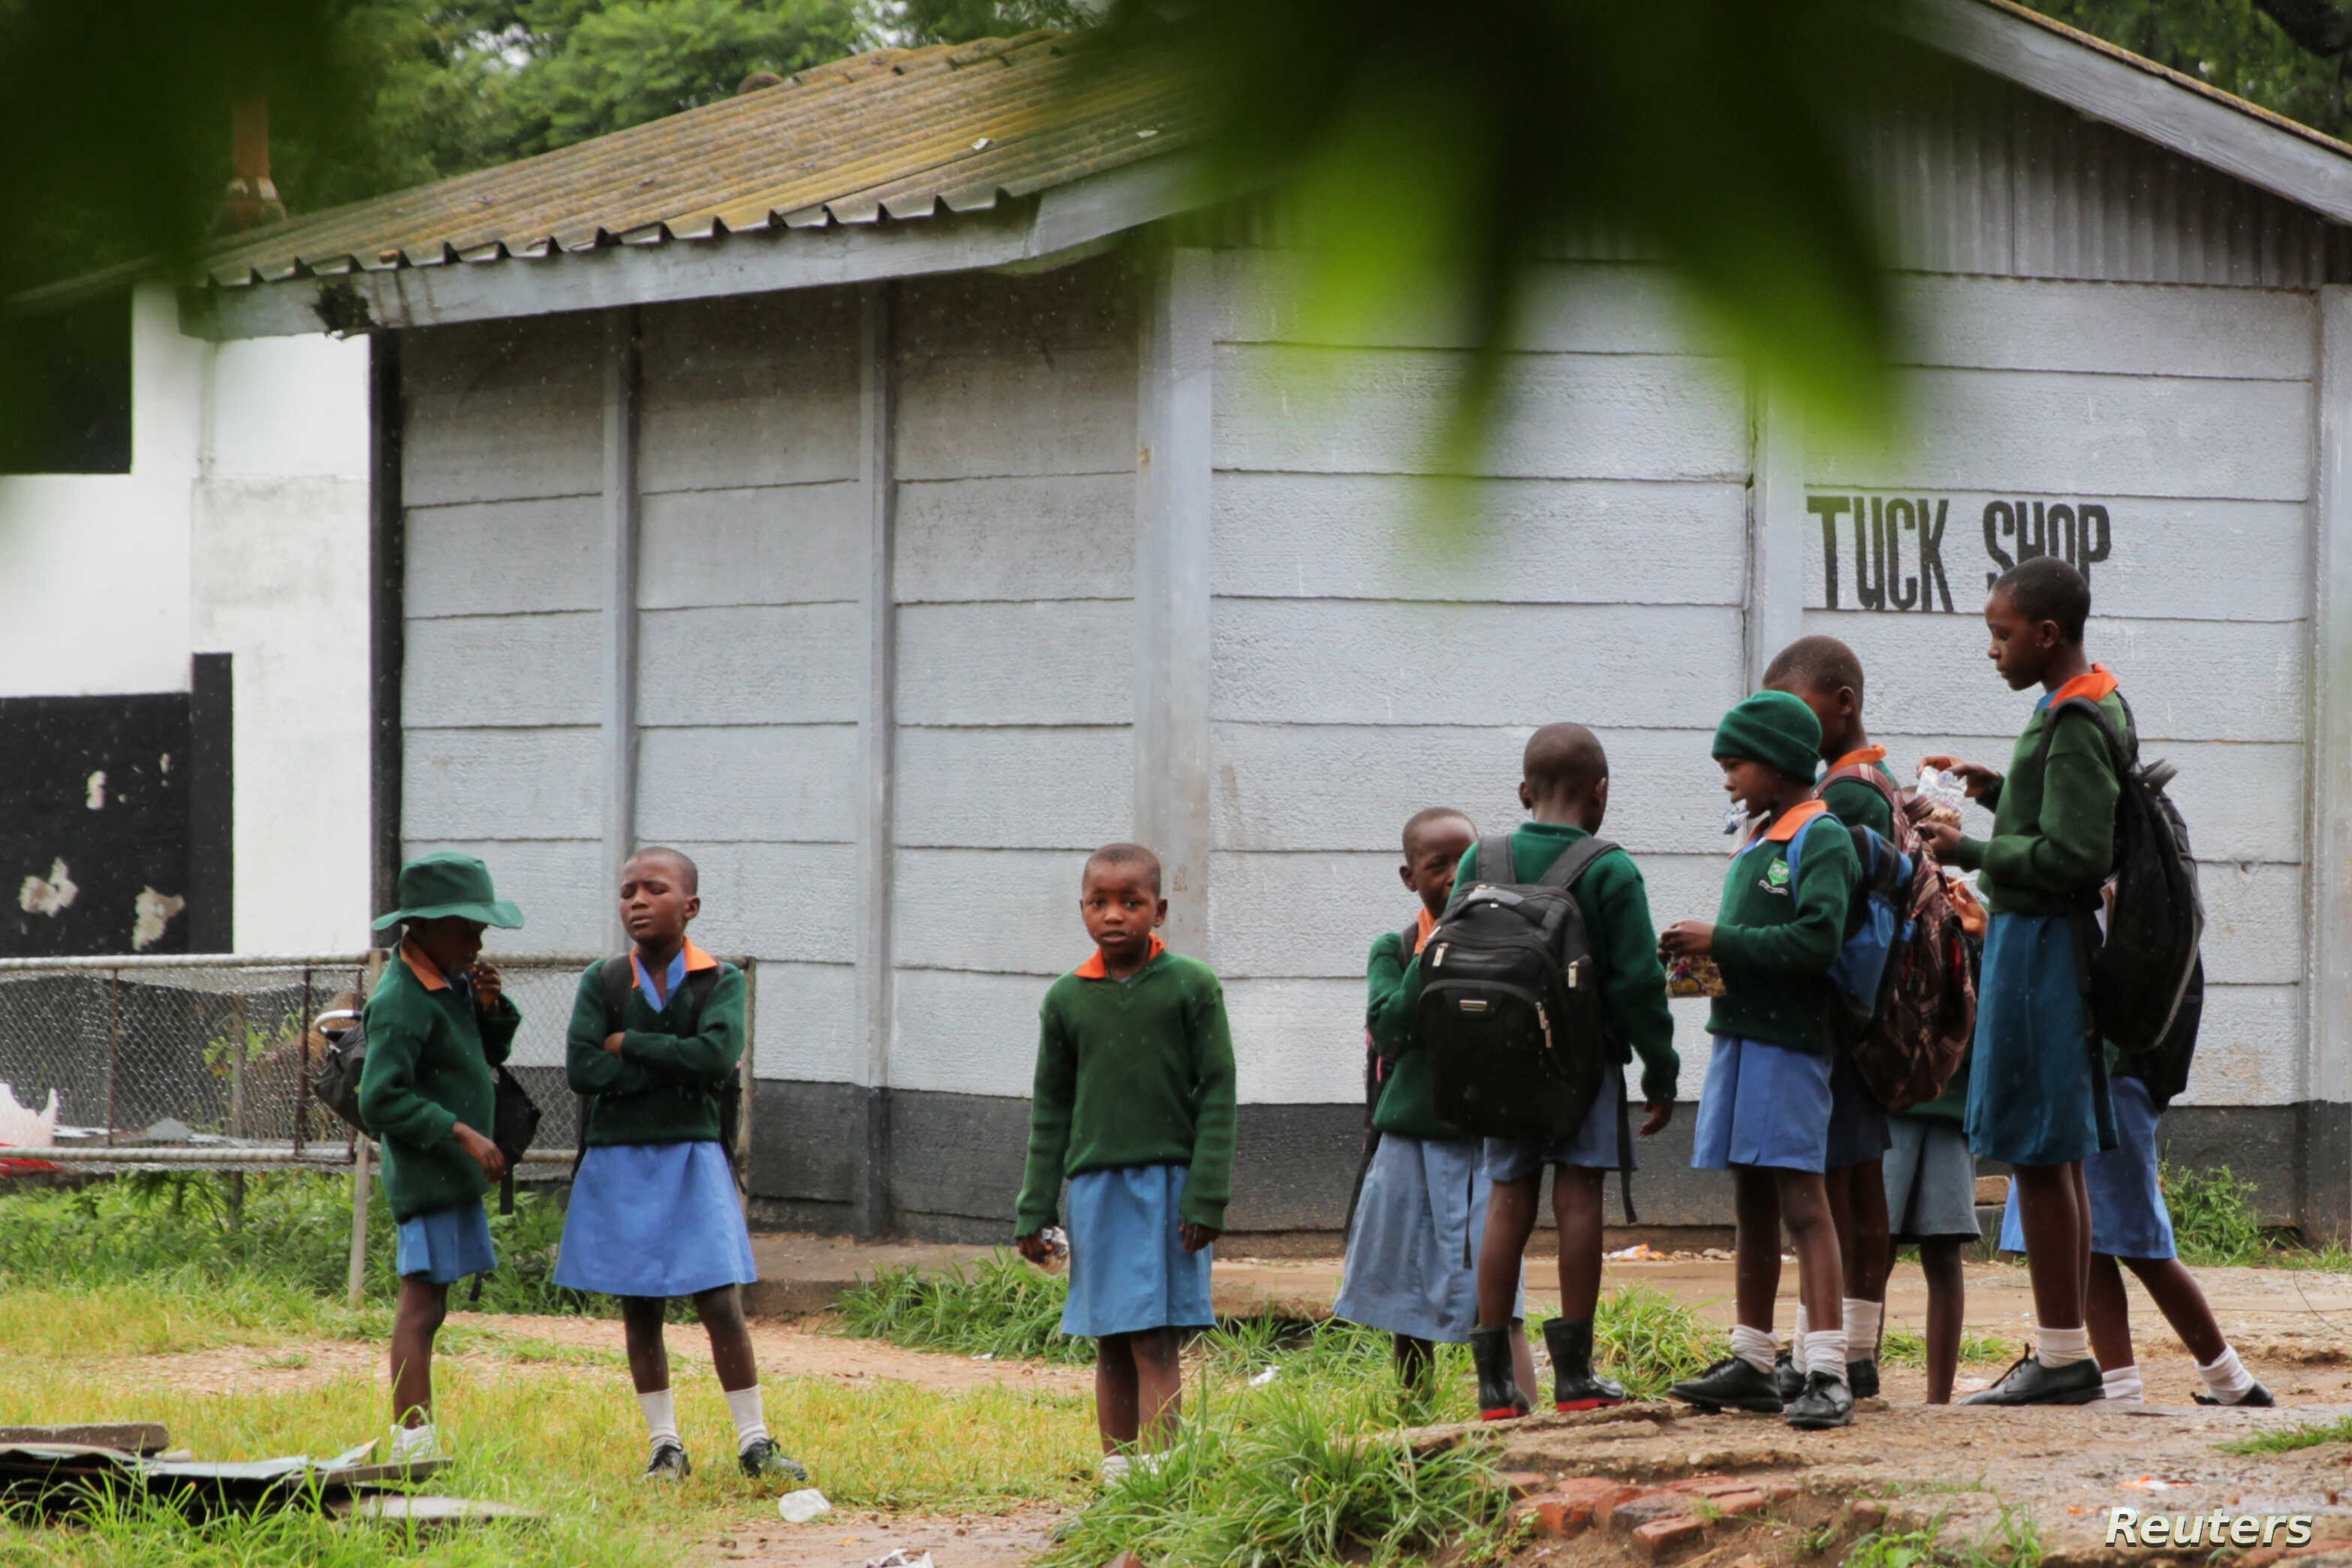 Pupils stand outside classrooms at a government school in the capital city of Harare, Zimbabwe February 5, 2019.